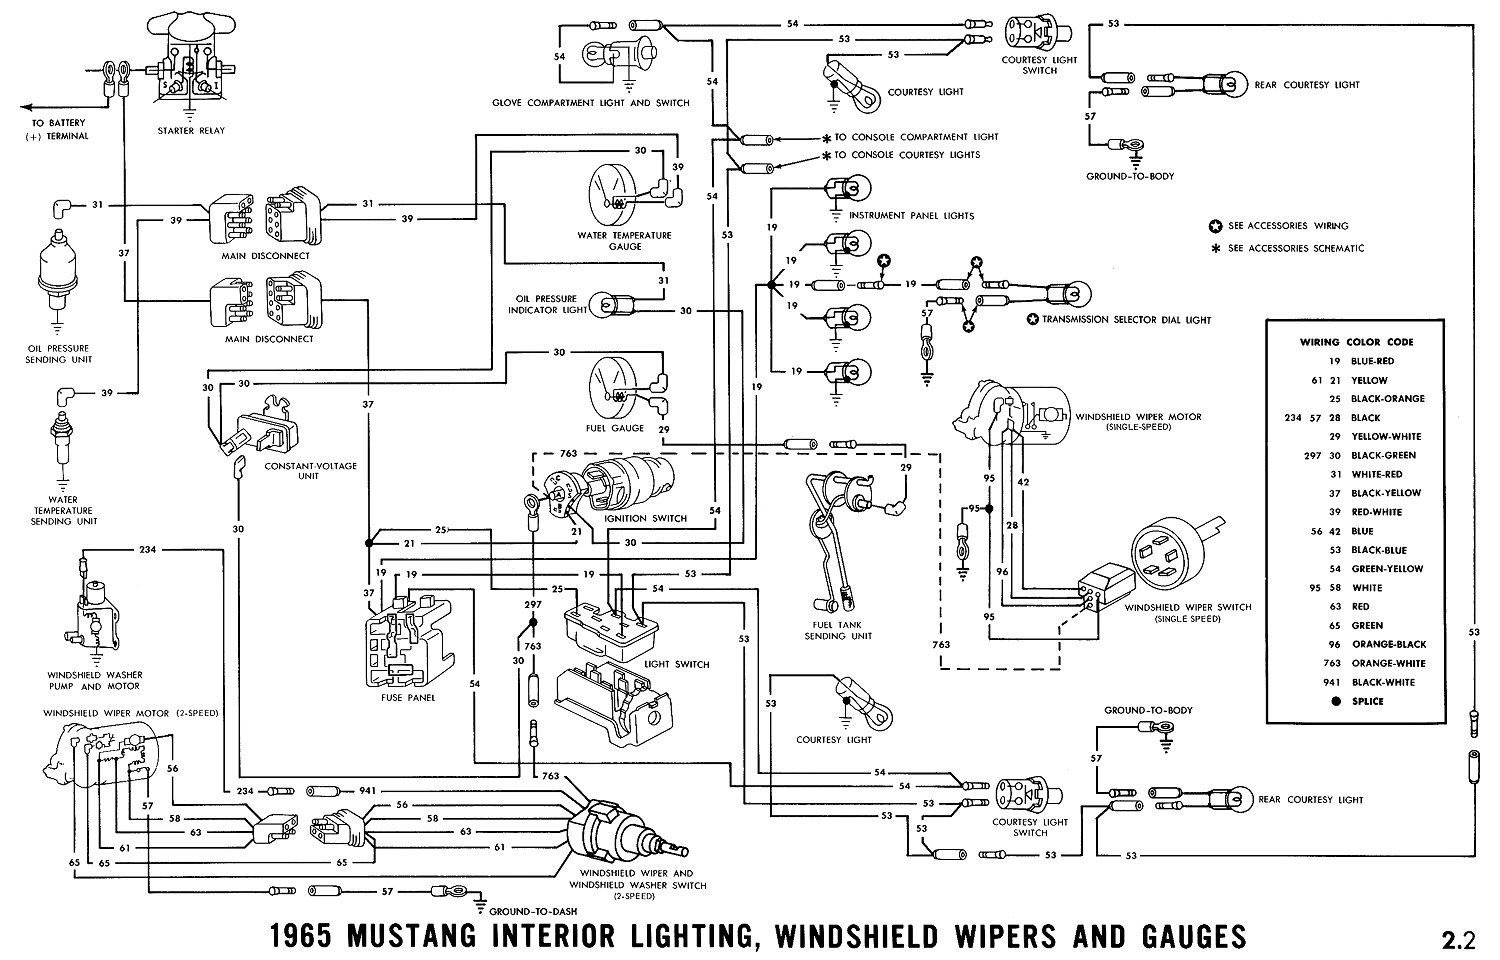 1965g 1965 mustang wiring diagrams average joe restoration 1970 mustang mach 1 wiring diagram at gsmx.co